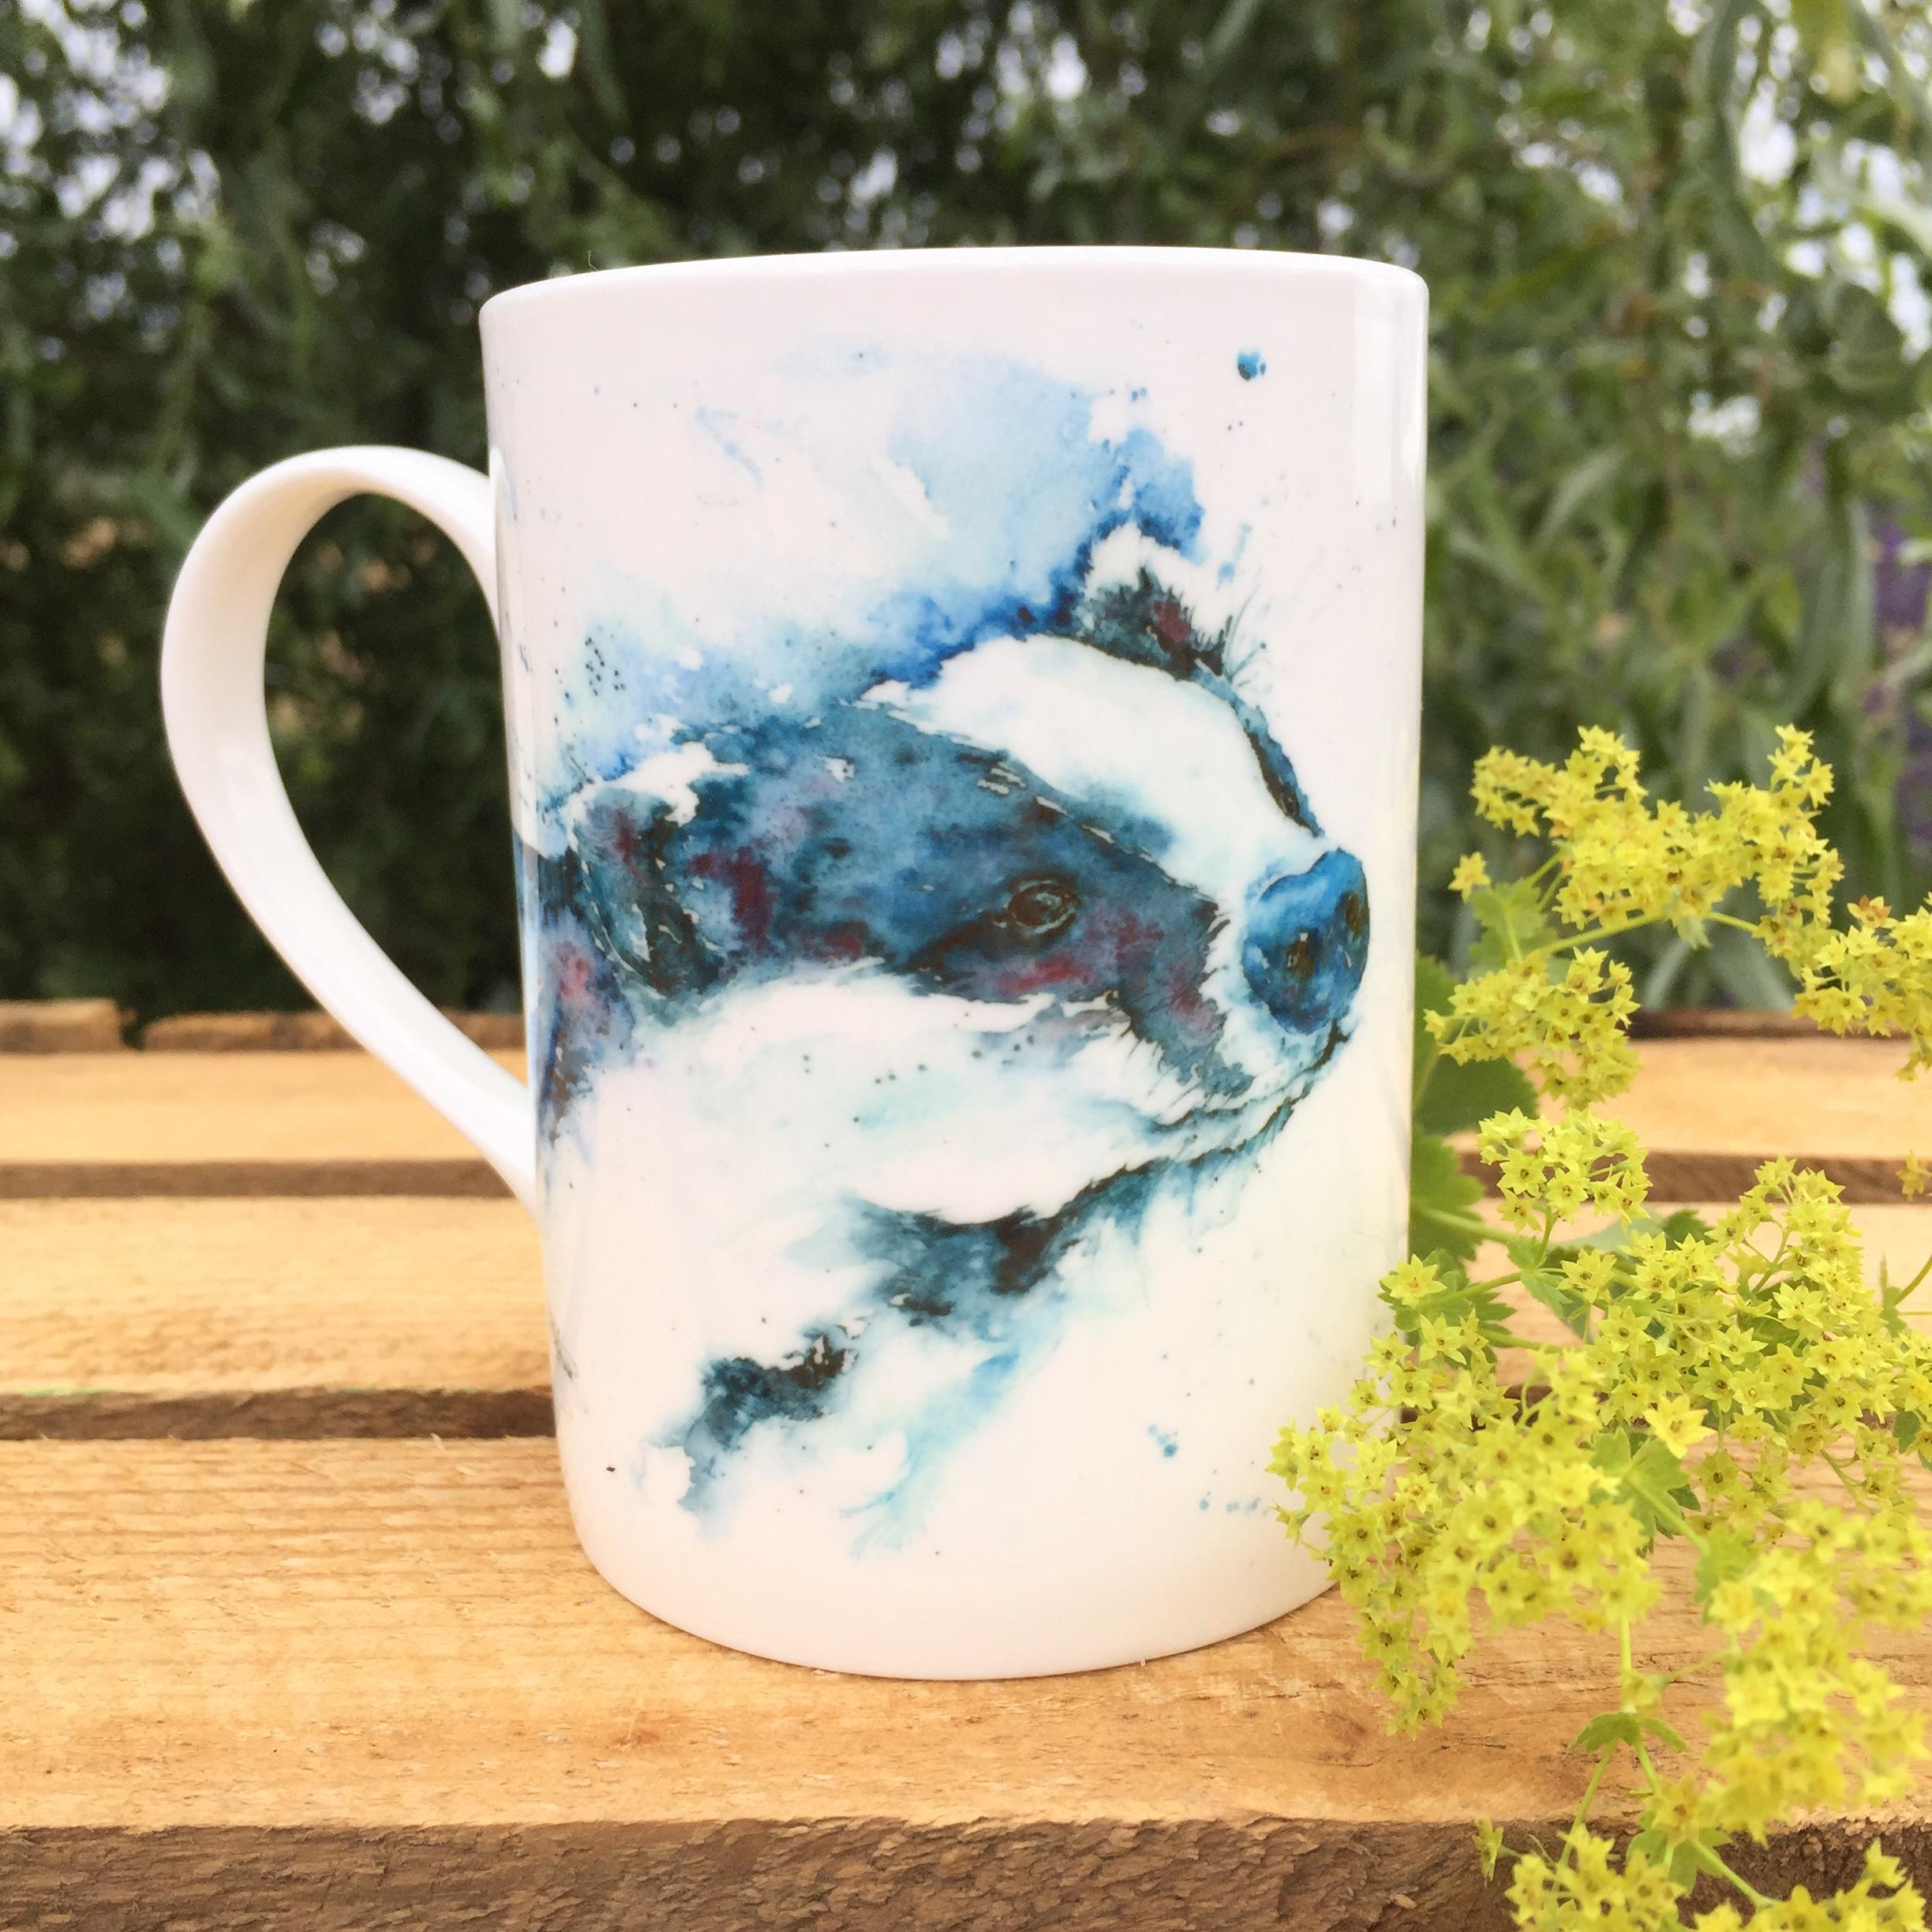 10oz badger mug